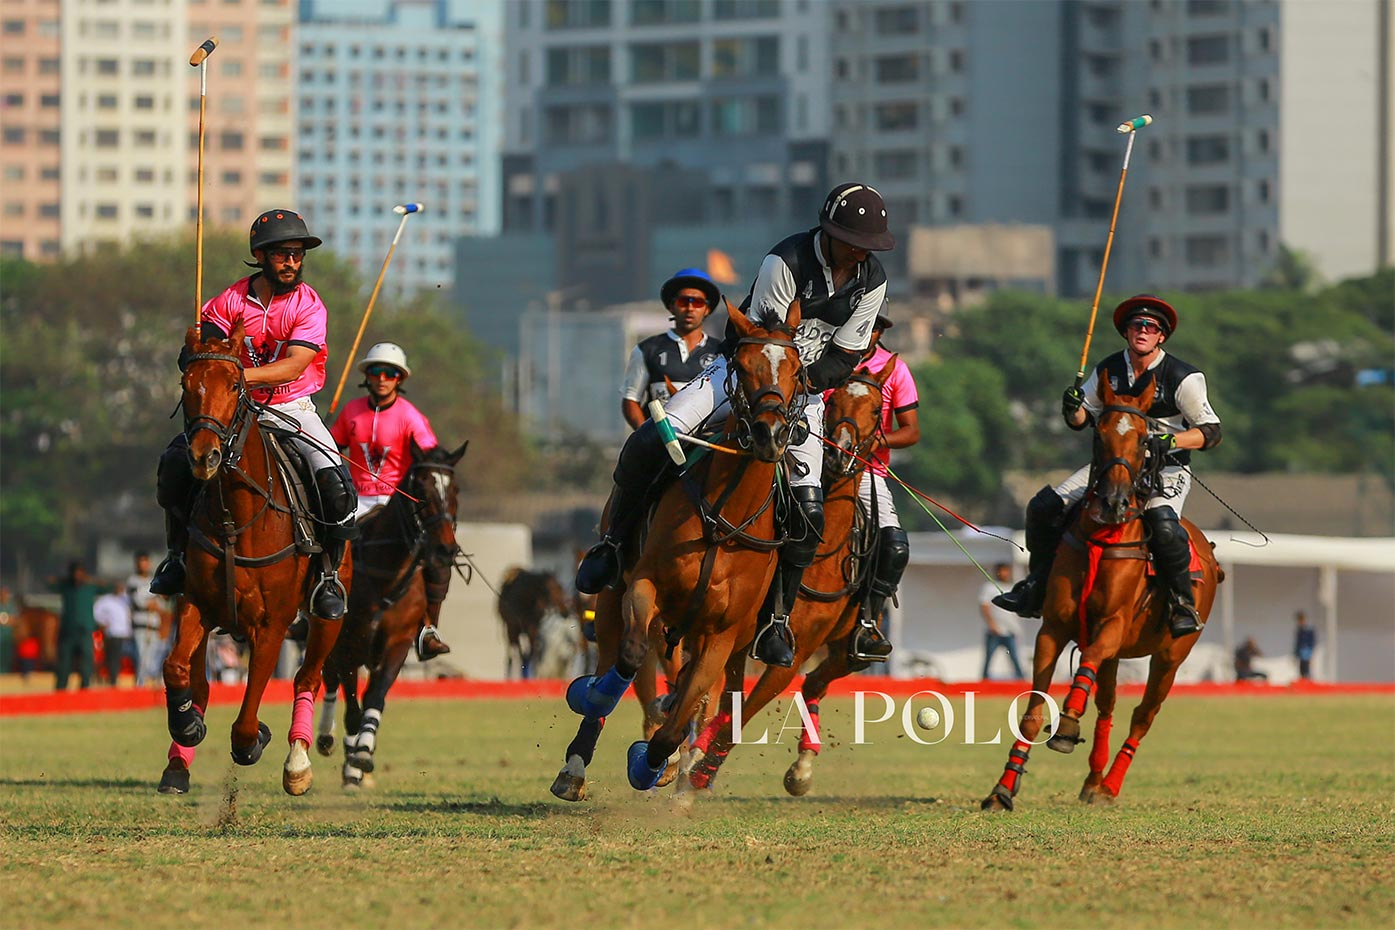 Pacing It Up | Mumbai Polo Season - 10 Goal Tournament